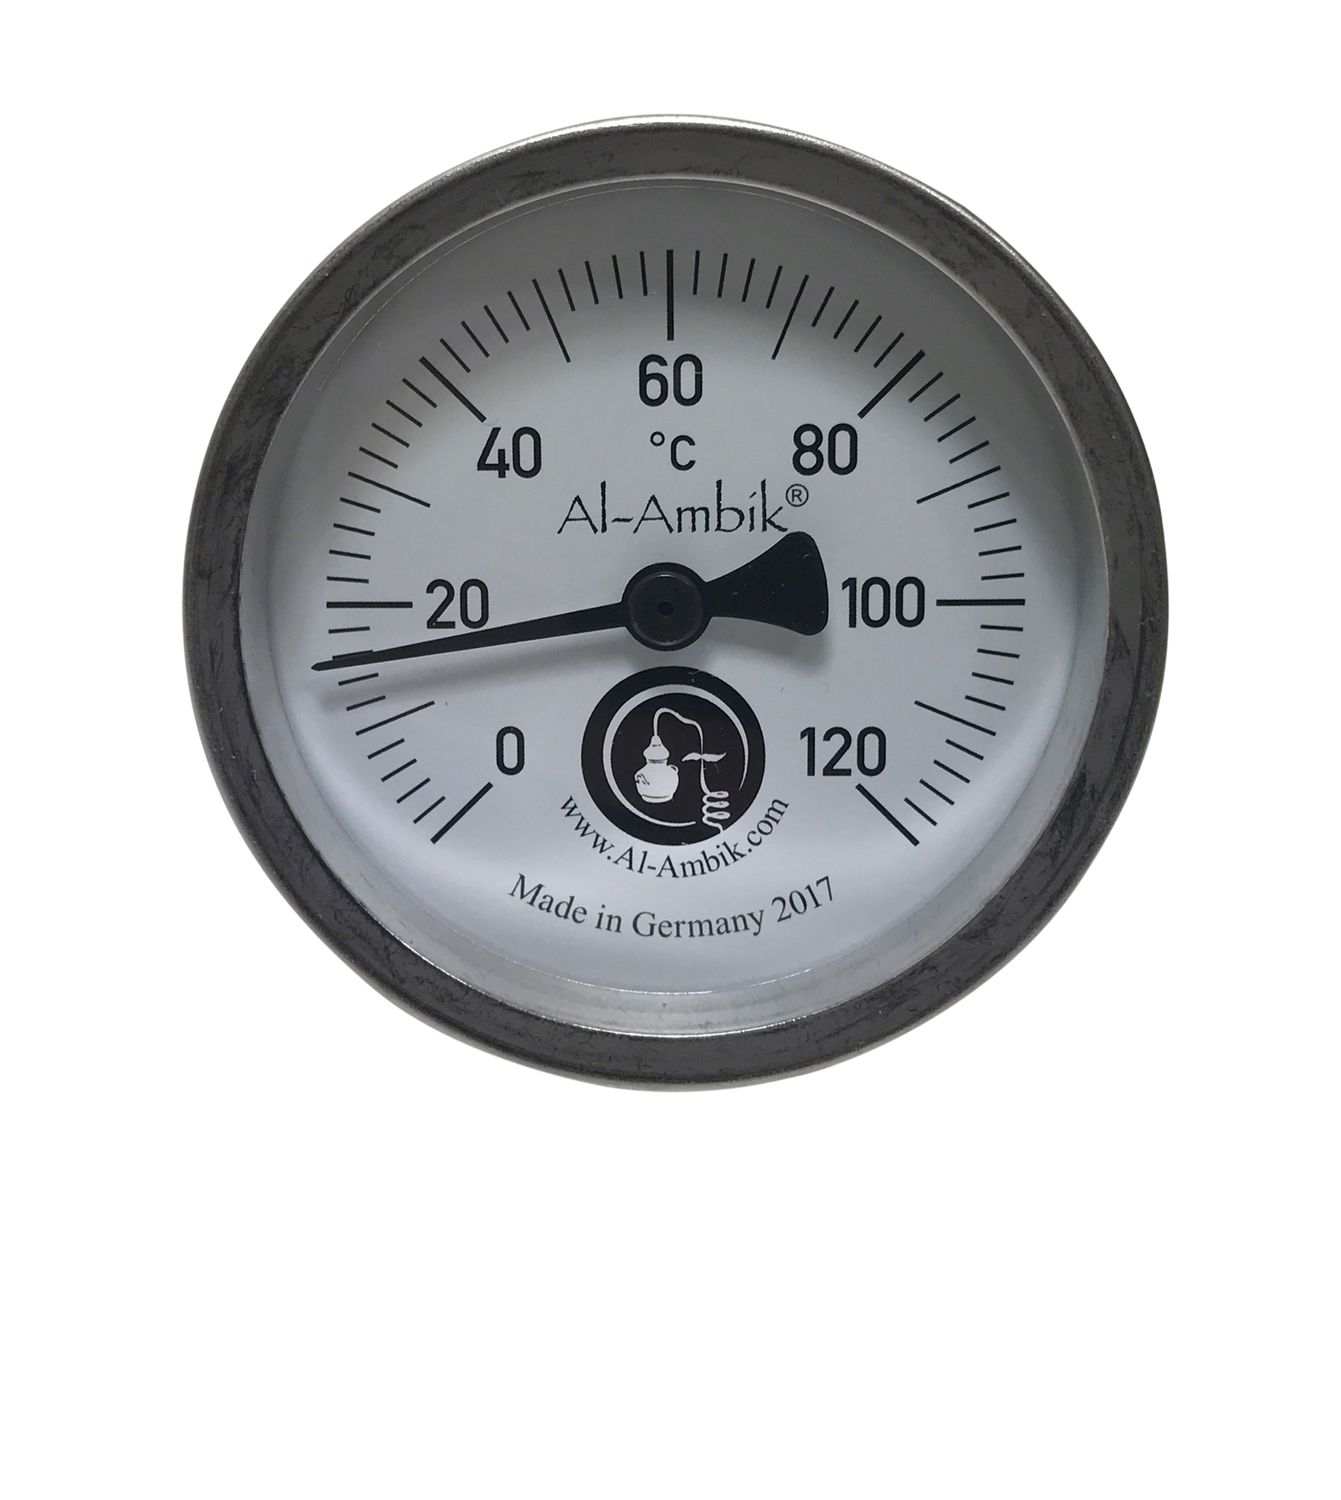 Al-Ambik®  thermometer for distillation (6 cm)